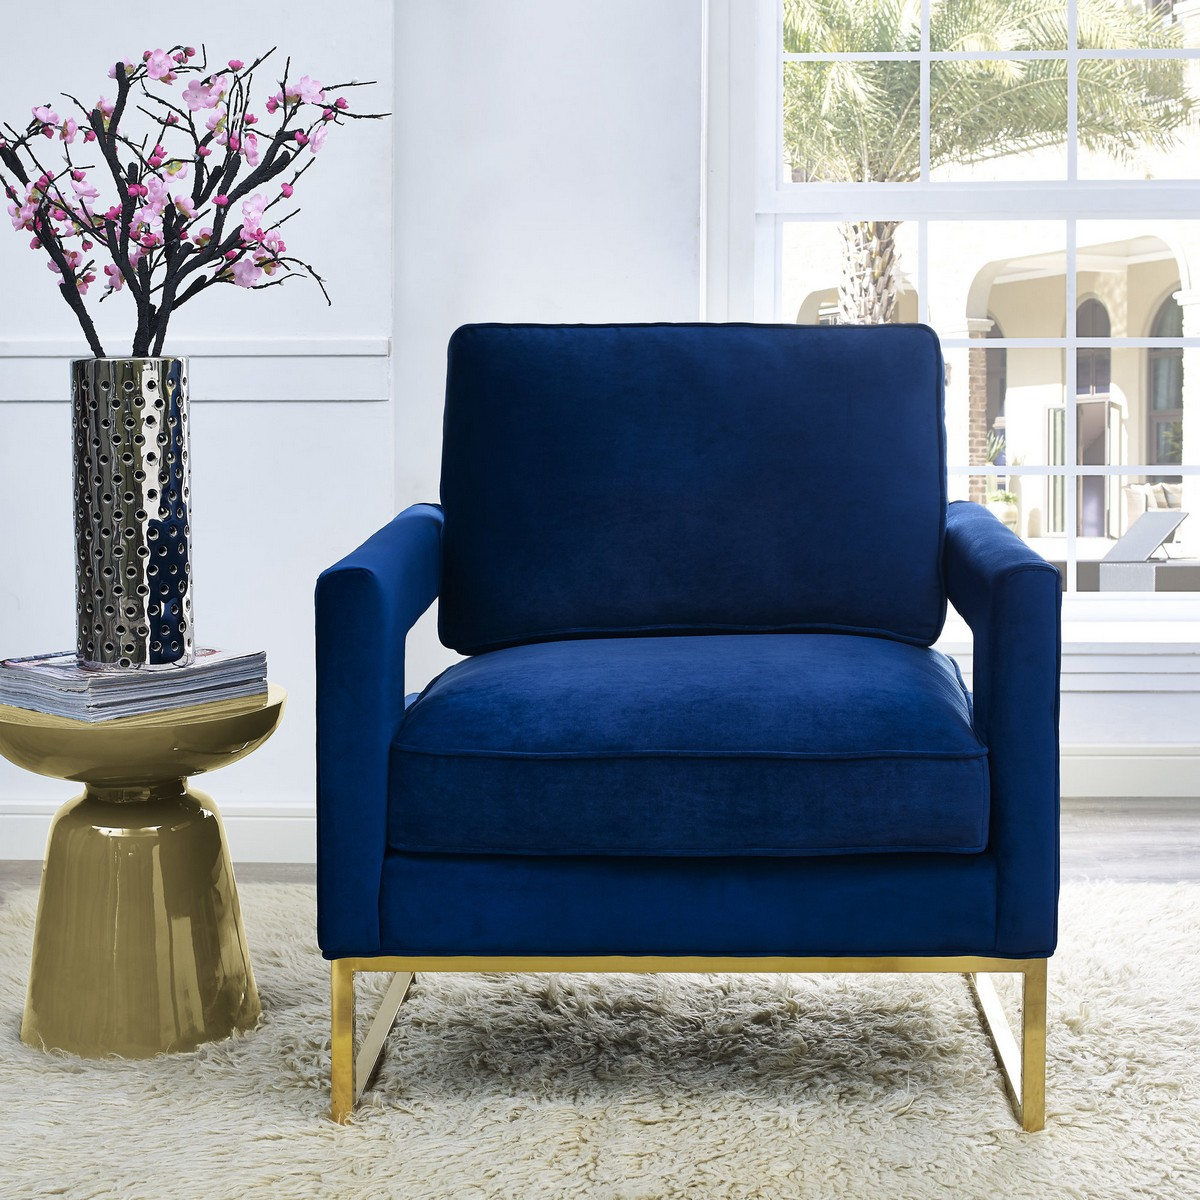 Tov Furniture Avery Navy Velvet Chair A91 At Homelement Com